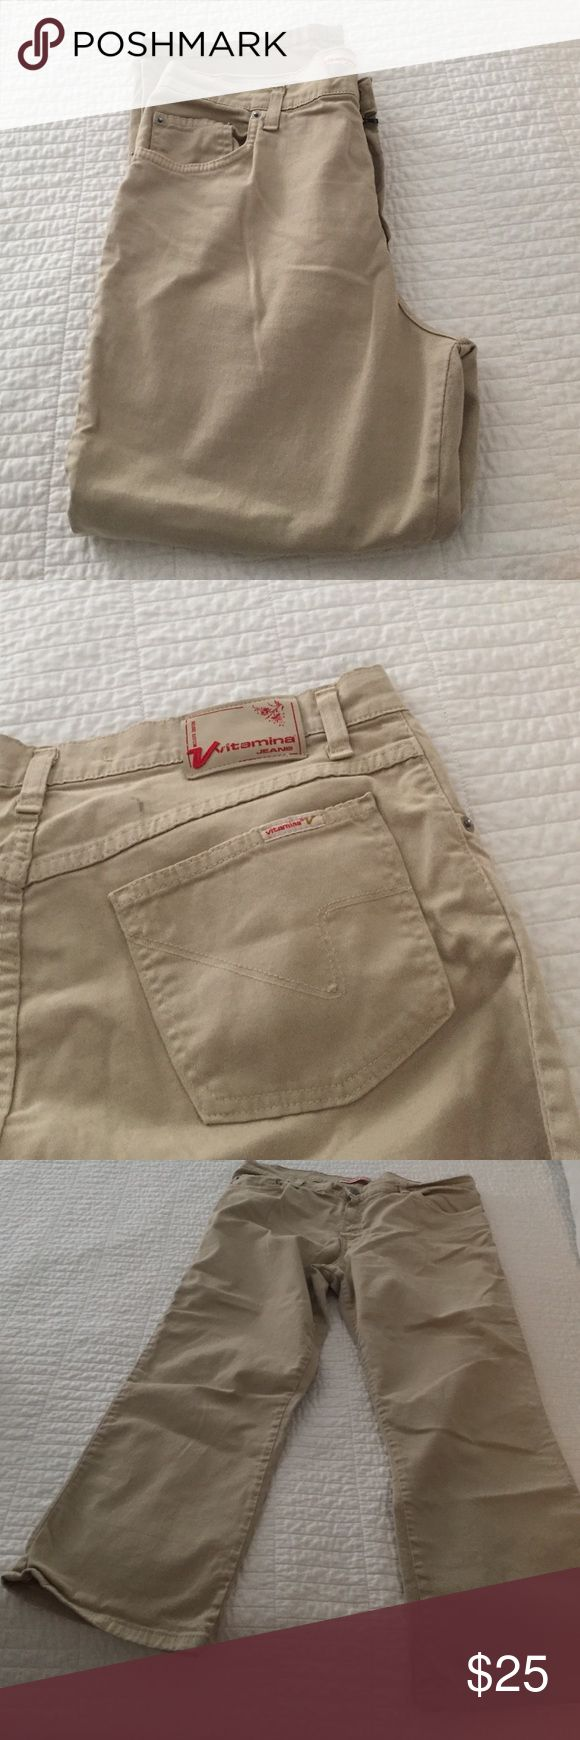 VITAMINA  stretch jeans. Khaki. Size 12. VITAMINA stretch jean. Tag inside says 52. They are Euro so they fit me as a 12. Low waist and cropped. VITAMINA Jeans Ankle & Cropped